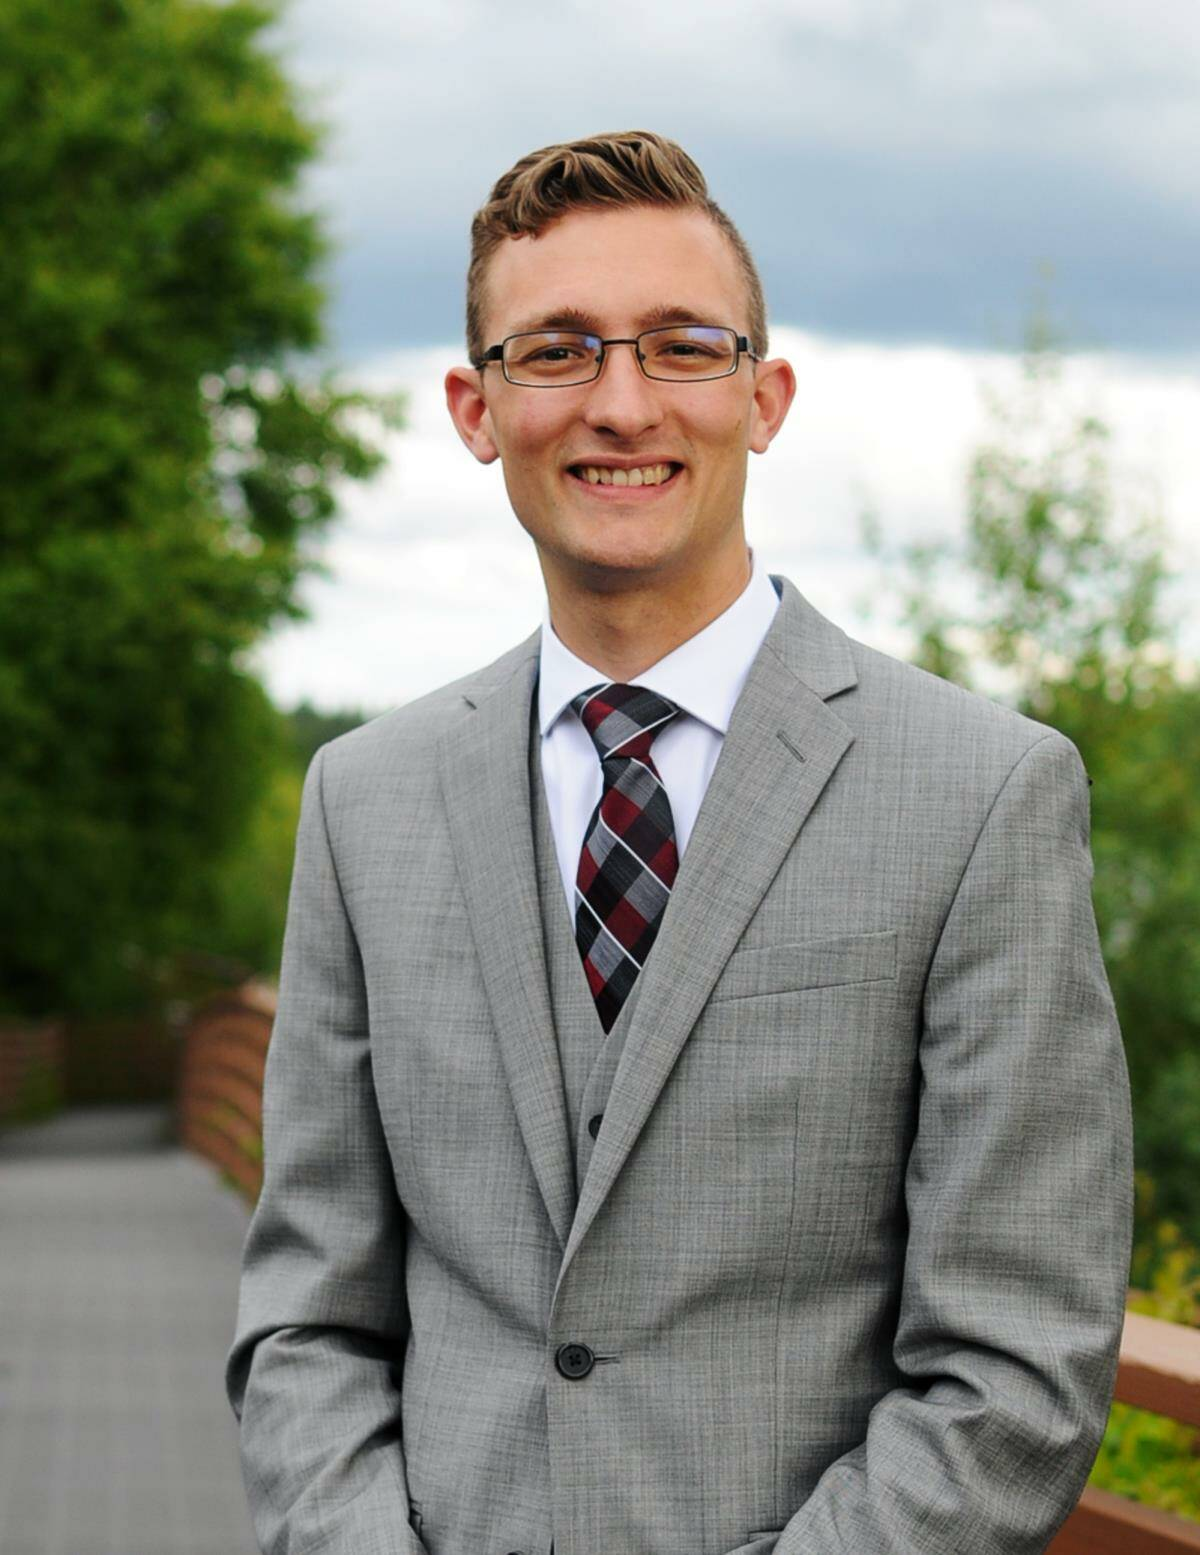 Soldotna City Council member Jordan Chilson is running for reelection to his seat on the council. (Courtesy photo)